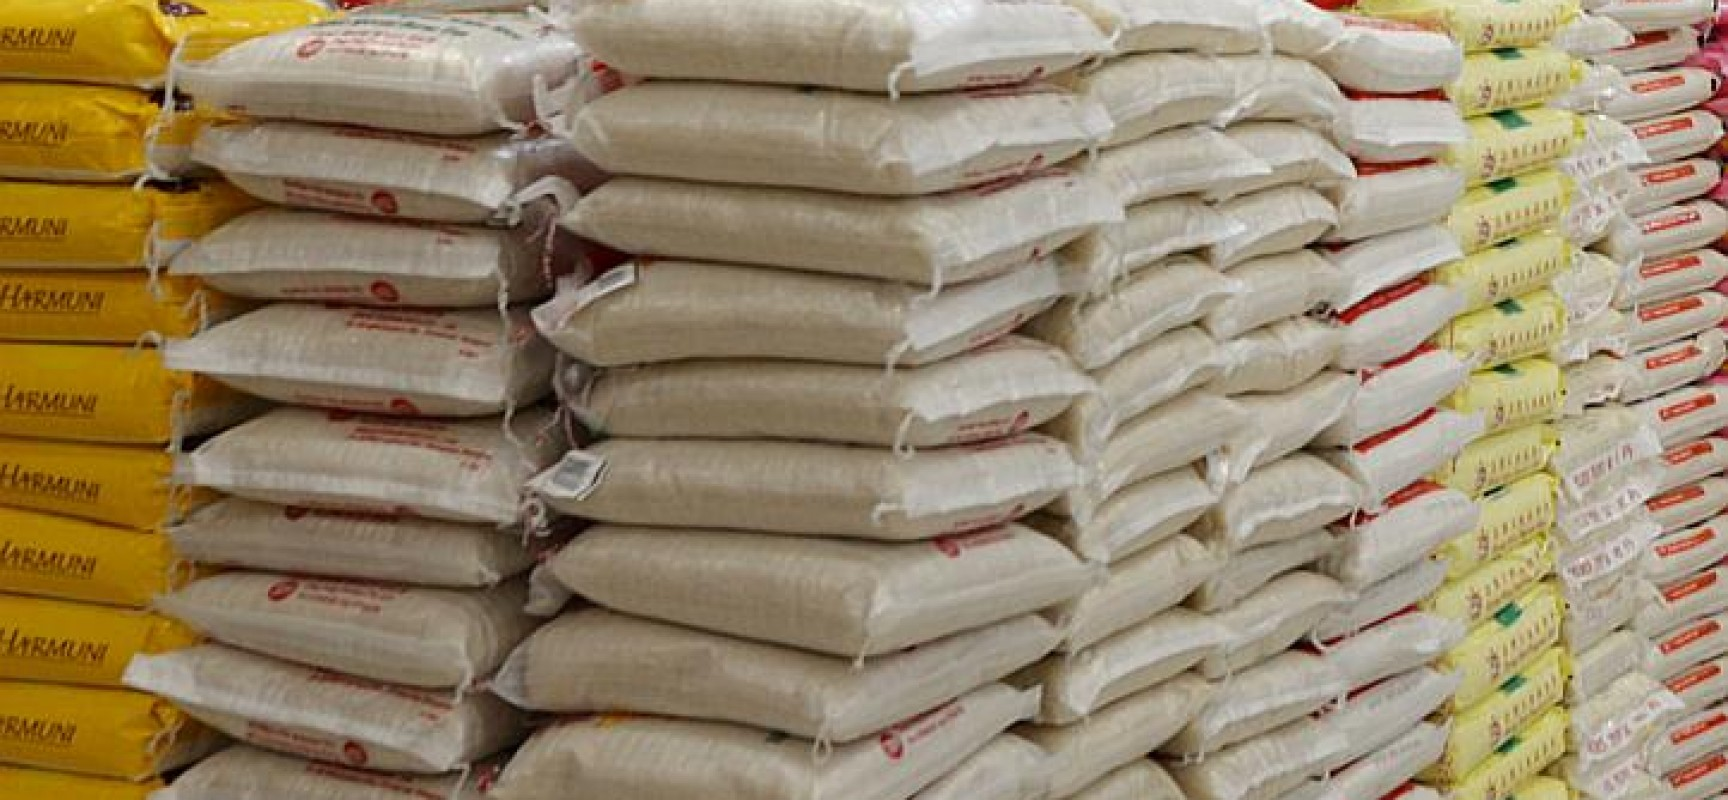 bags of fertilizer in Nigeria